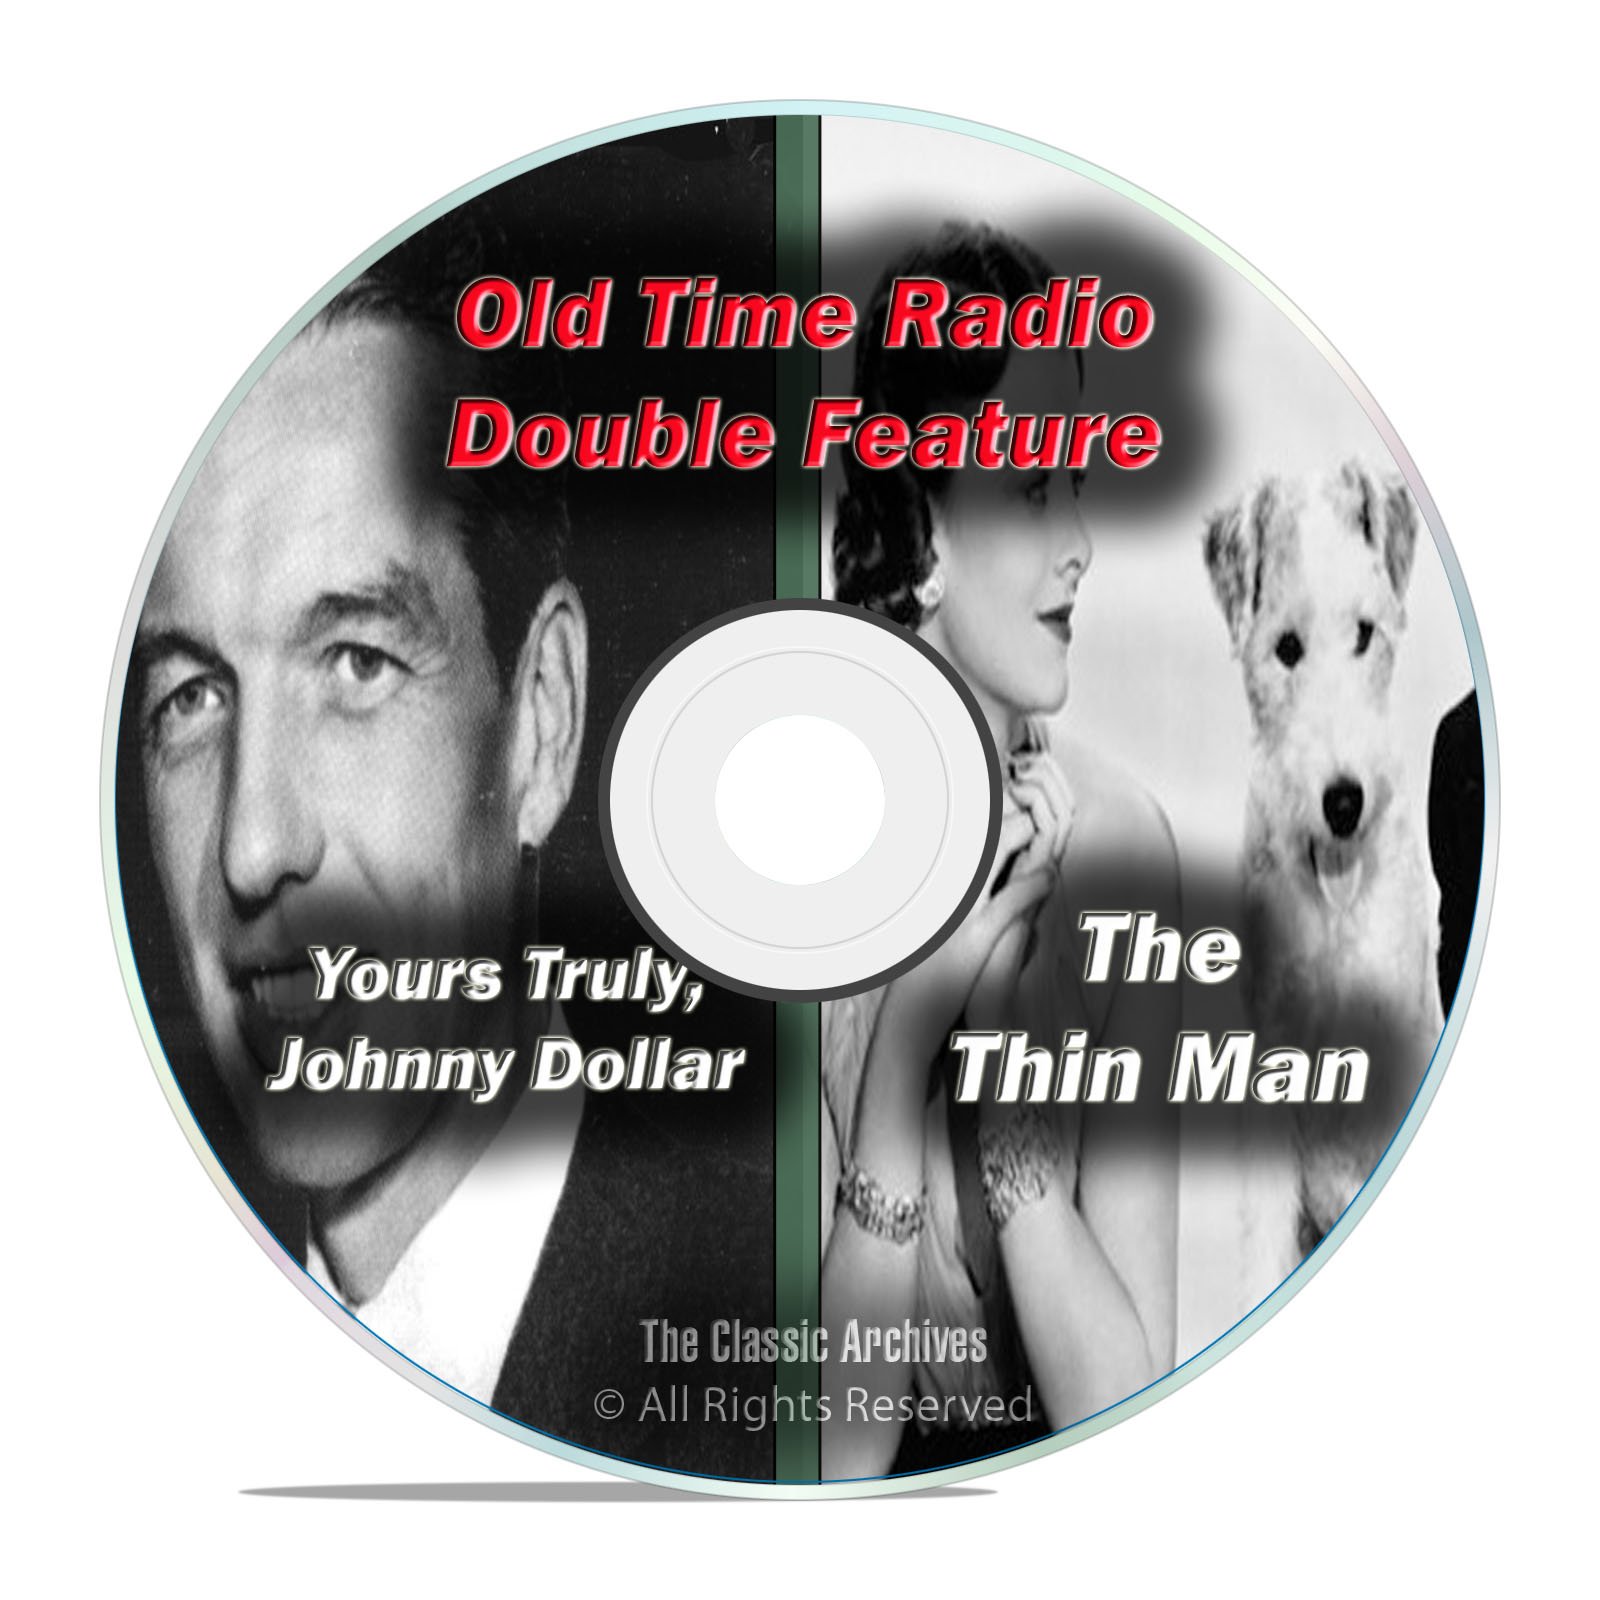 Yours Truly, Johnny Dollar, The Thin Man, 802 SHOWS Old Time Radio, OTR DVD